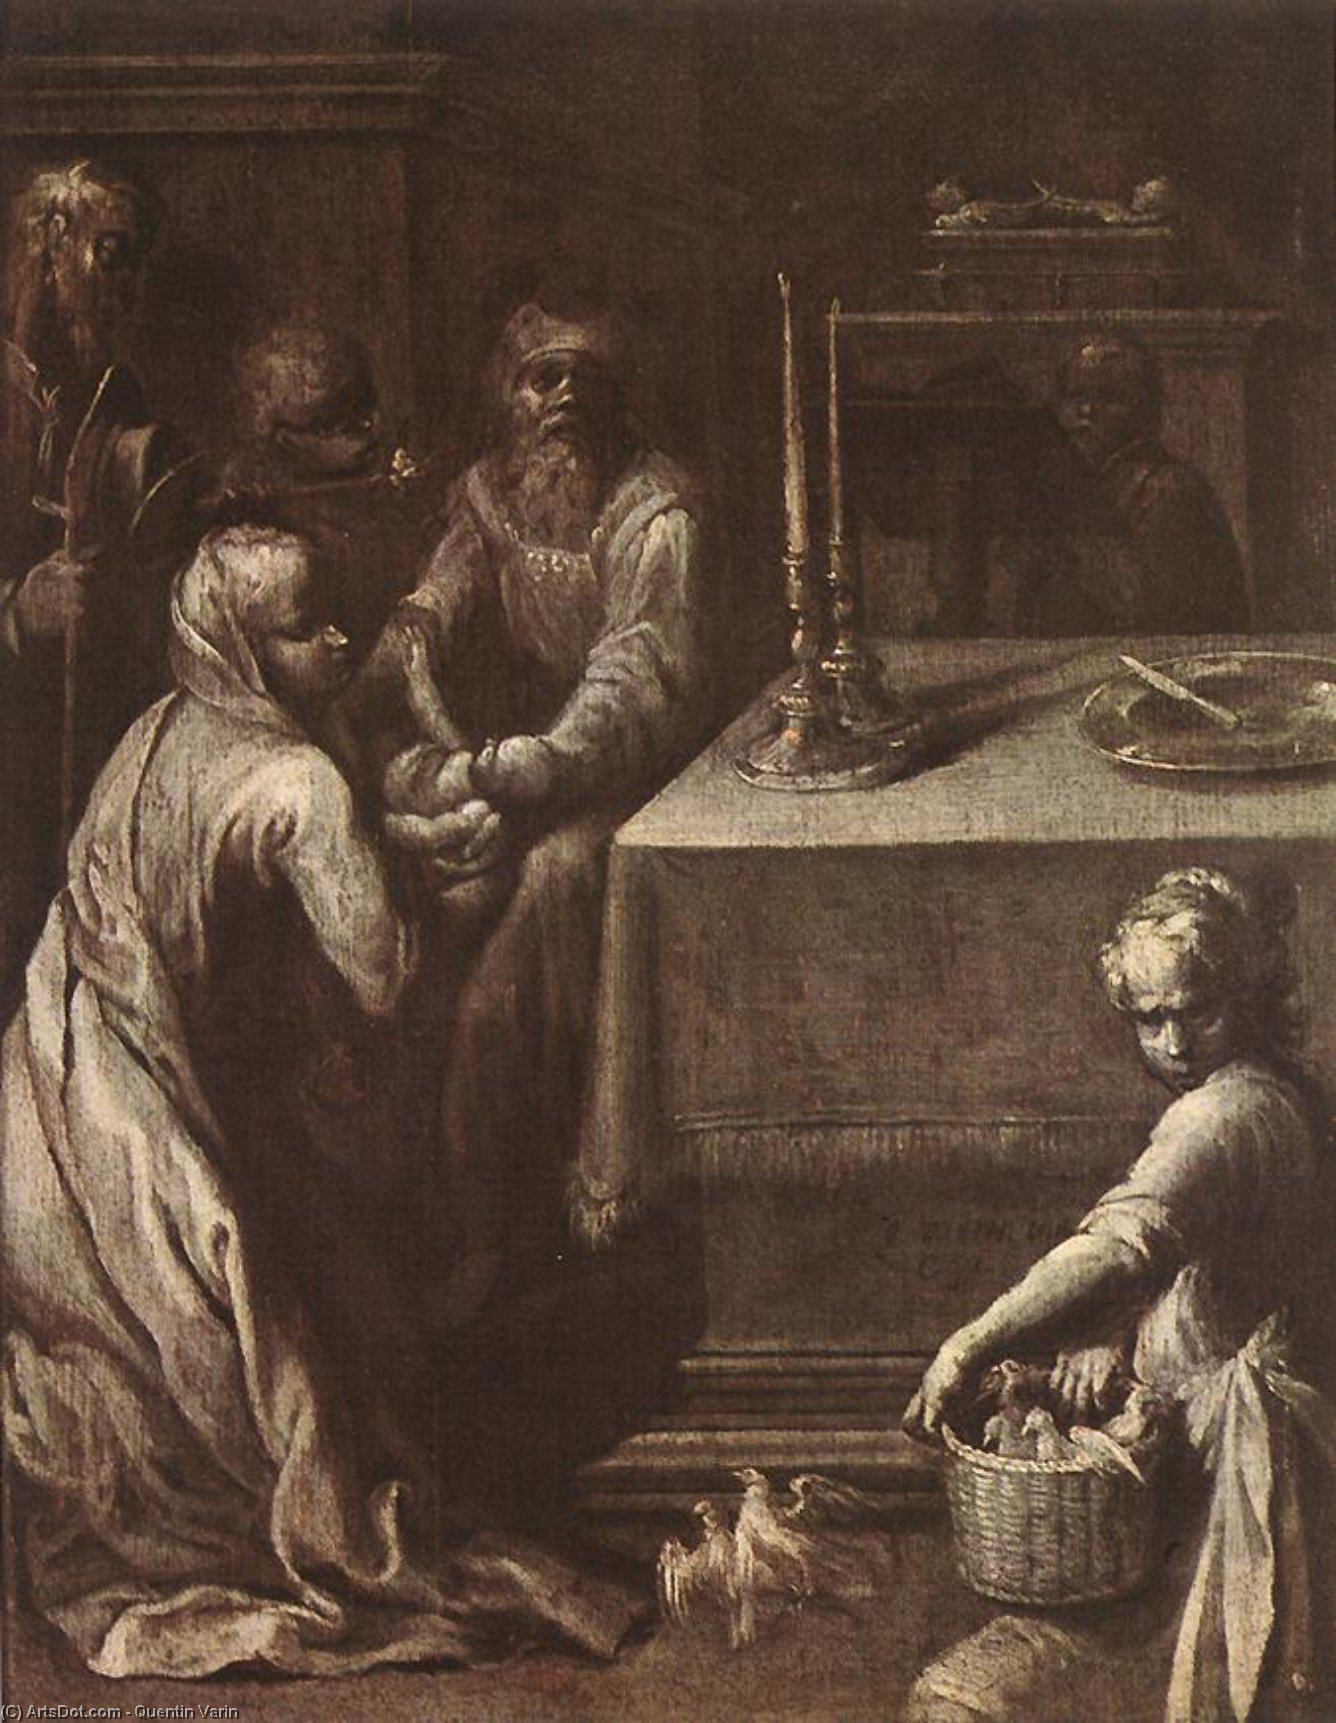 Wikioo.org - The Encyclopedia of Fine Arts - Painting, Artwork by Quentin Varin - Presentation of Christ in the Temple